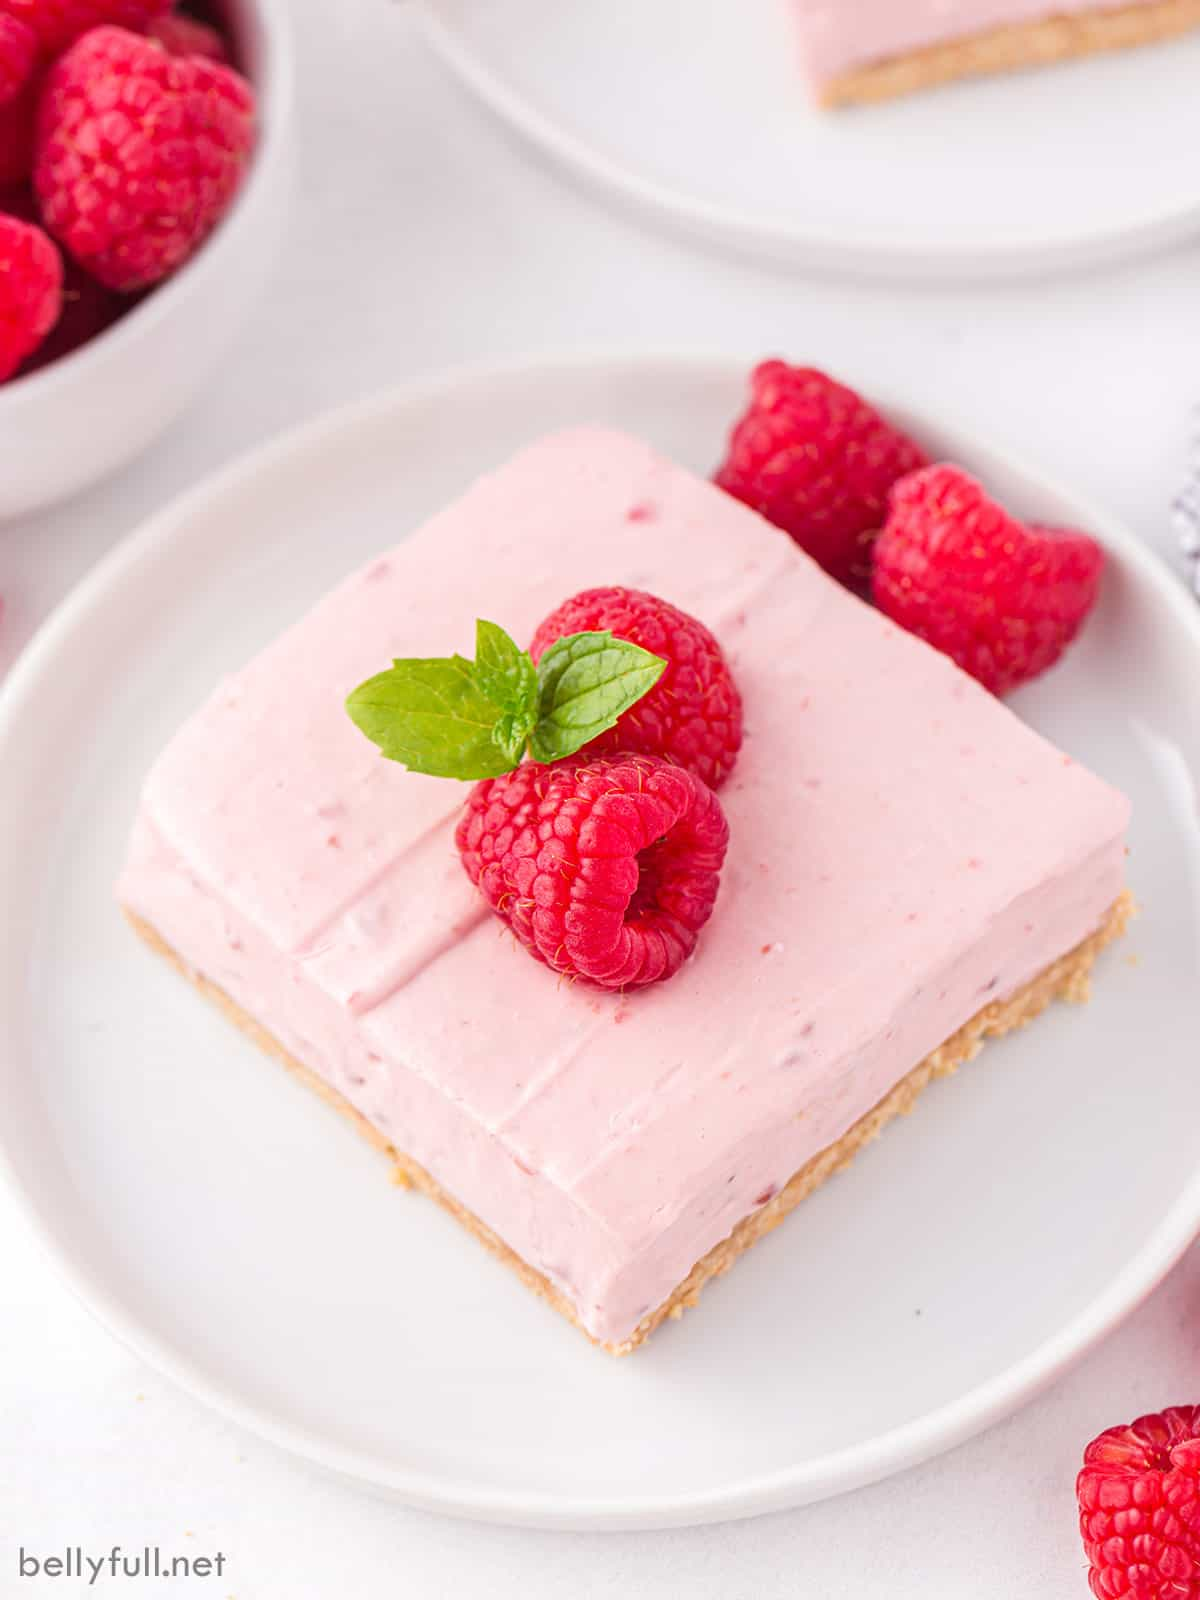 A raspberry bar topped with fresh raspberries on a white plate